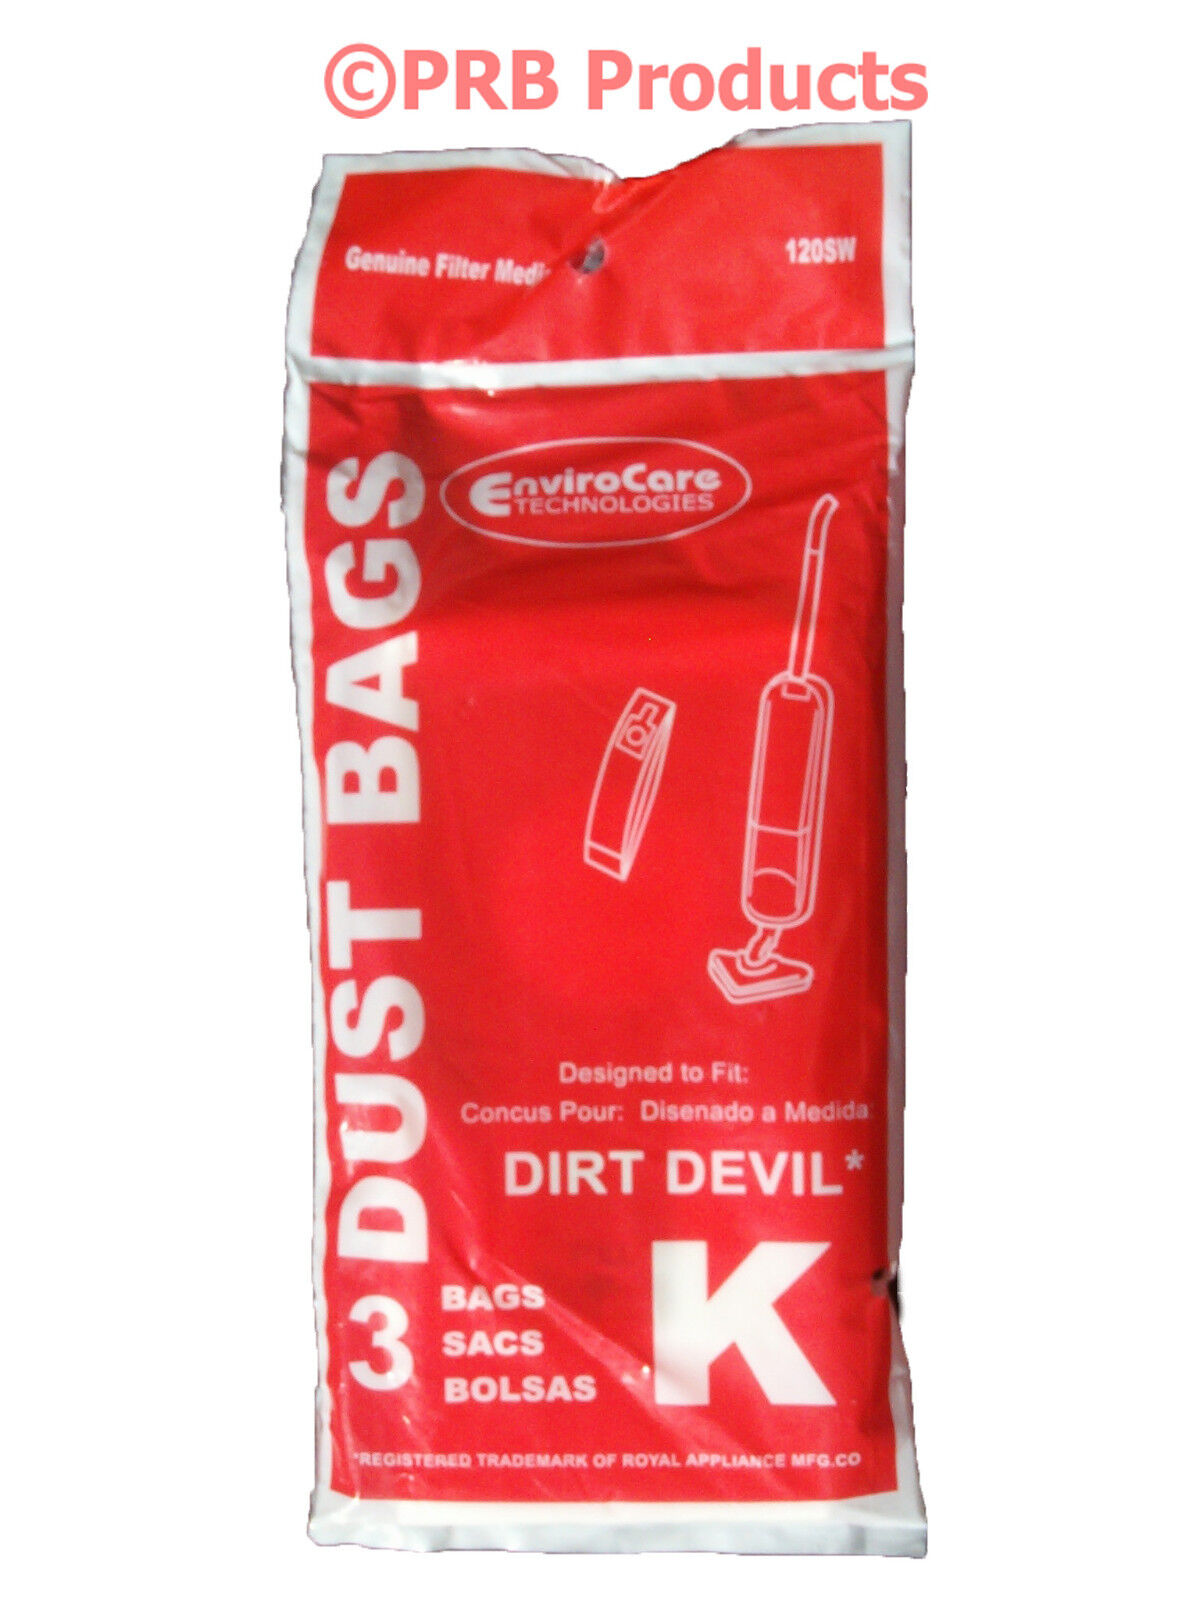 15 x DIRT DEVIL Vacuum Cleaner Bags Double Walled Filter Lined Hoover Bag